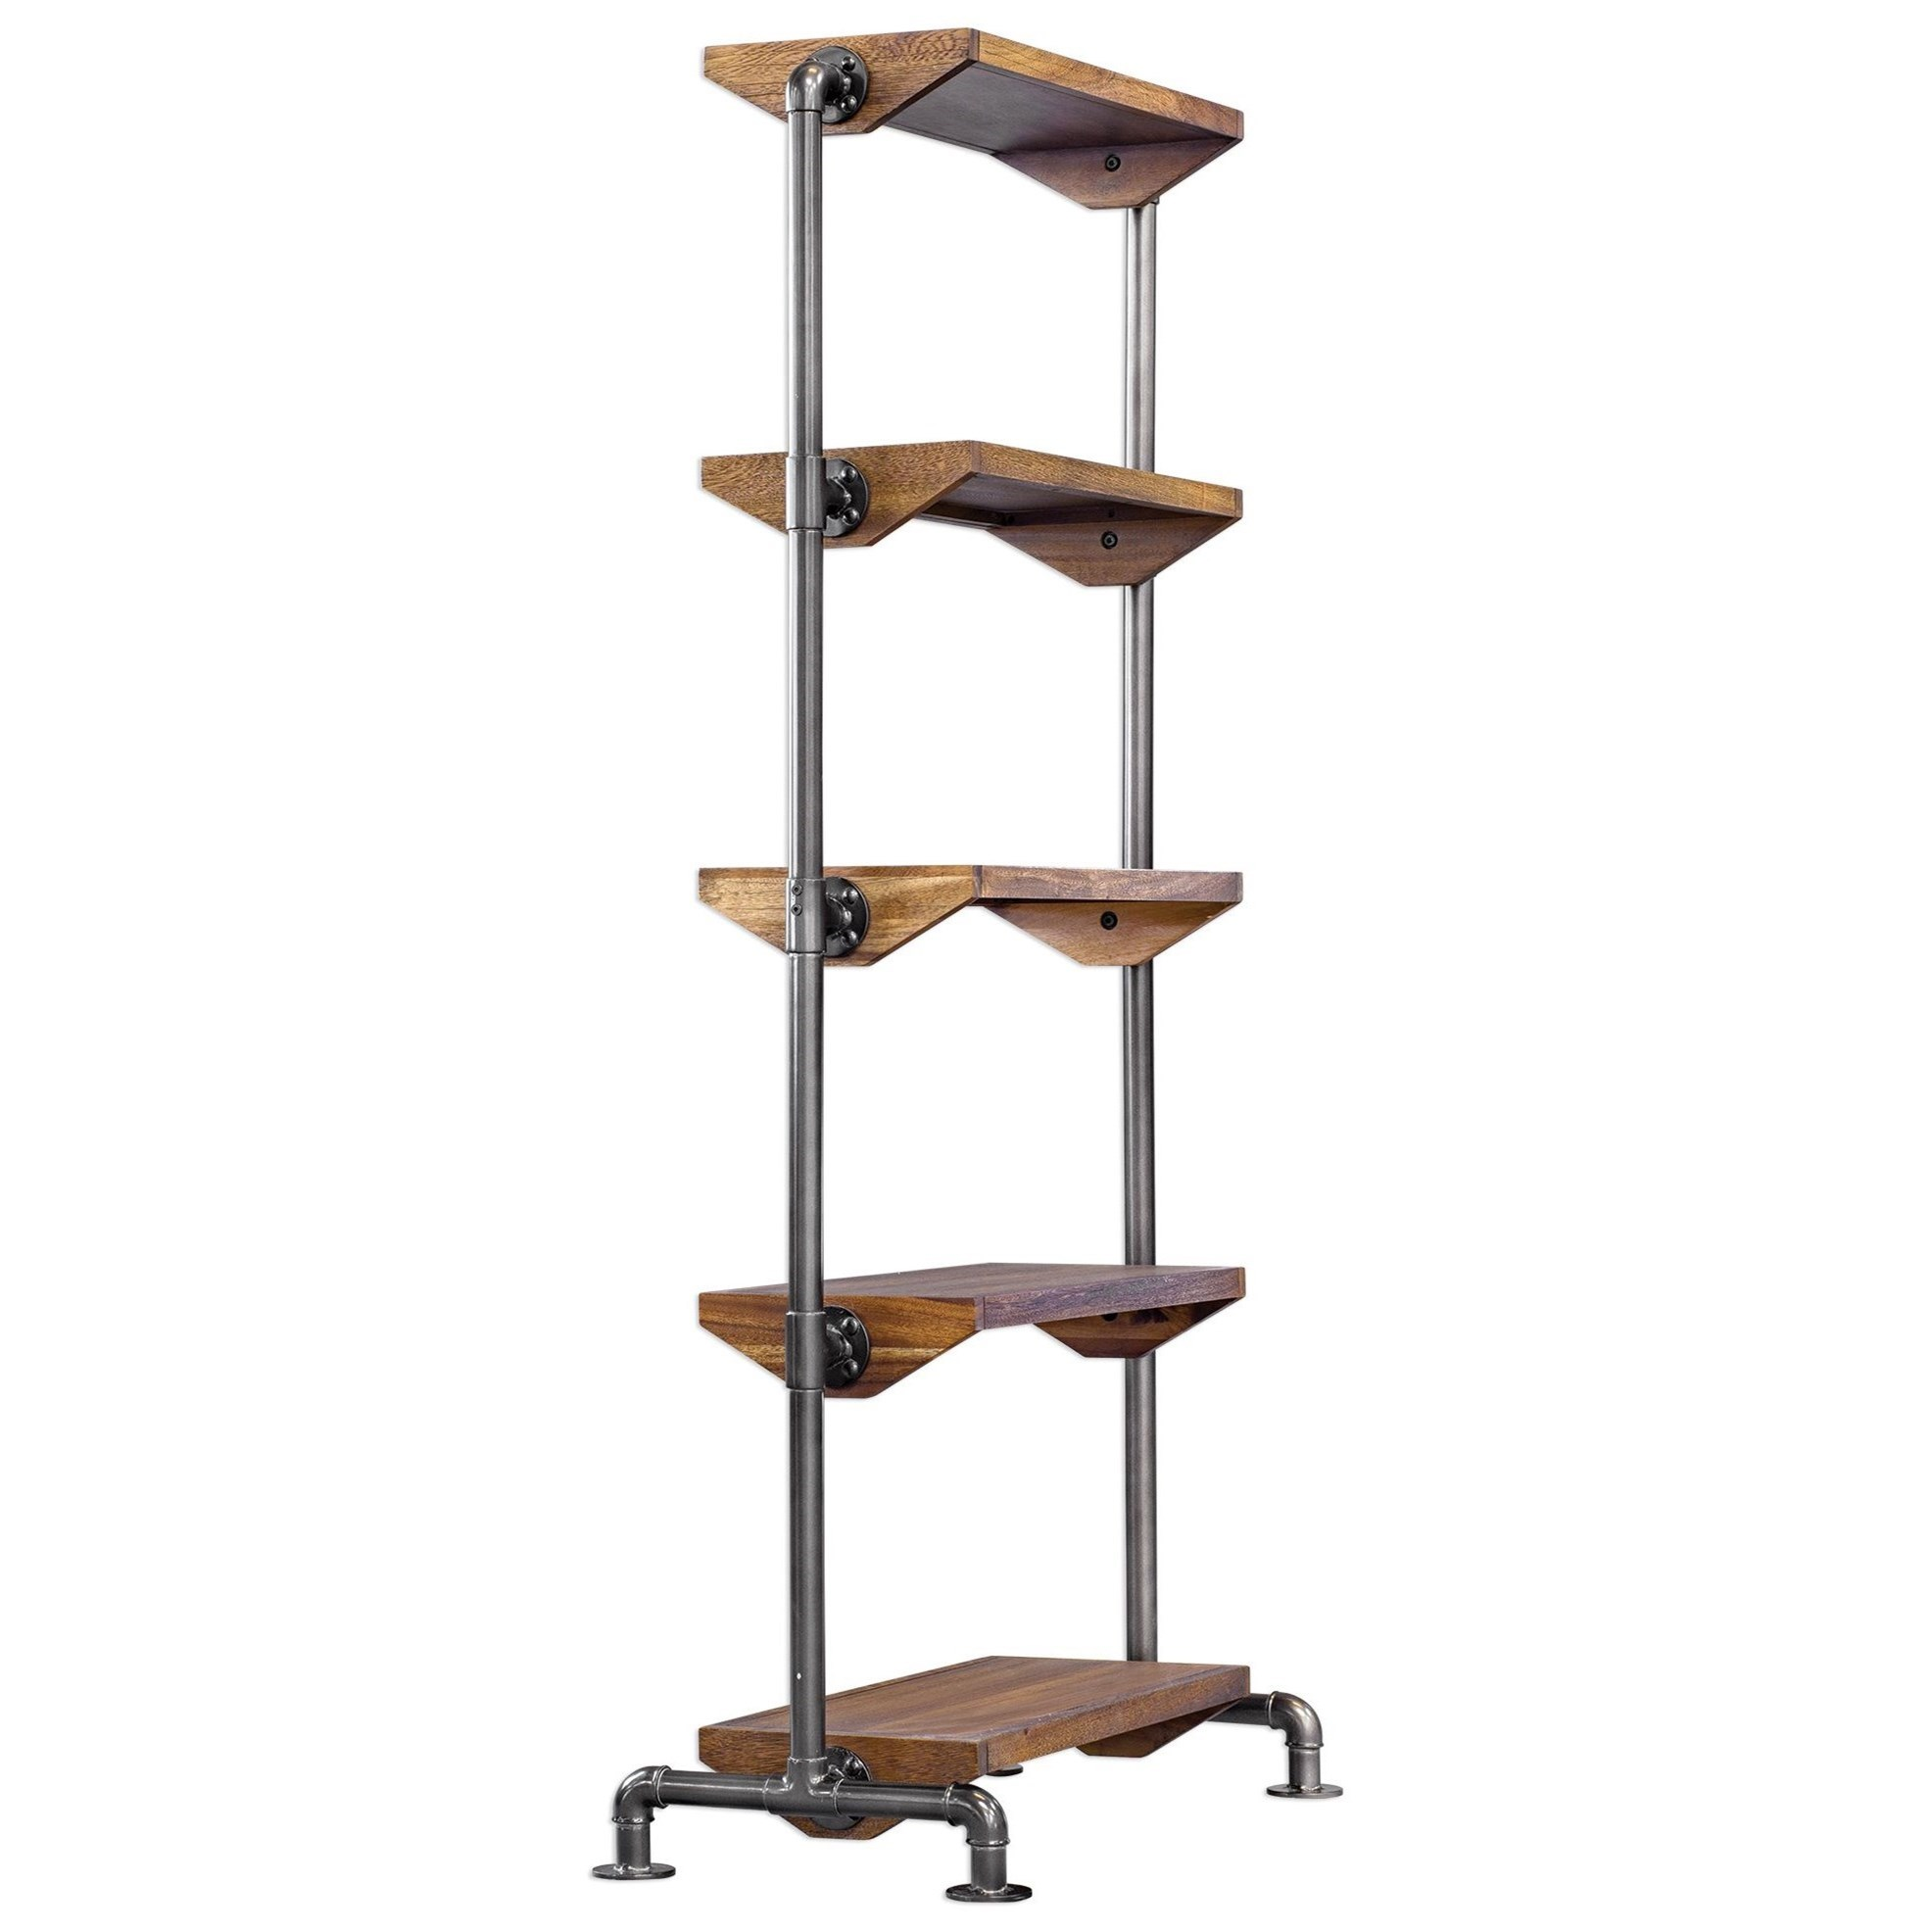 Accent Furniture - Bookcases Rhordyn Industrial Etagere by Uttermost at Del Sol Furniture